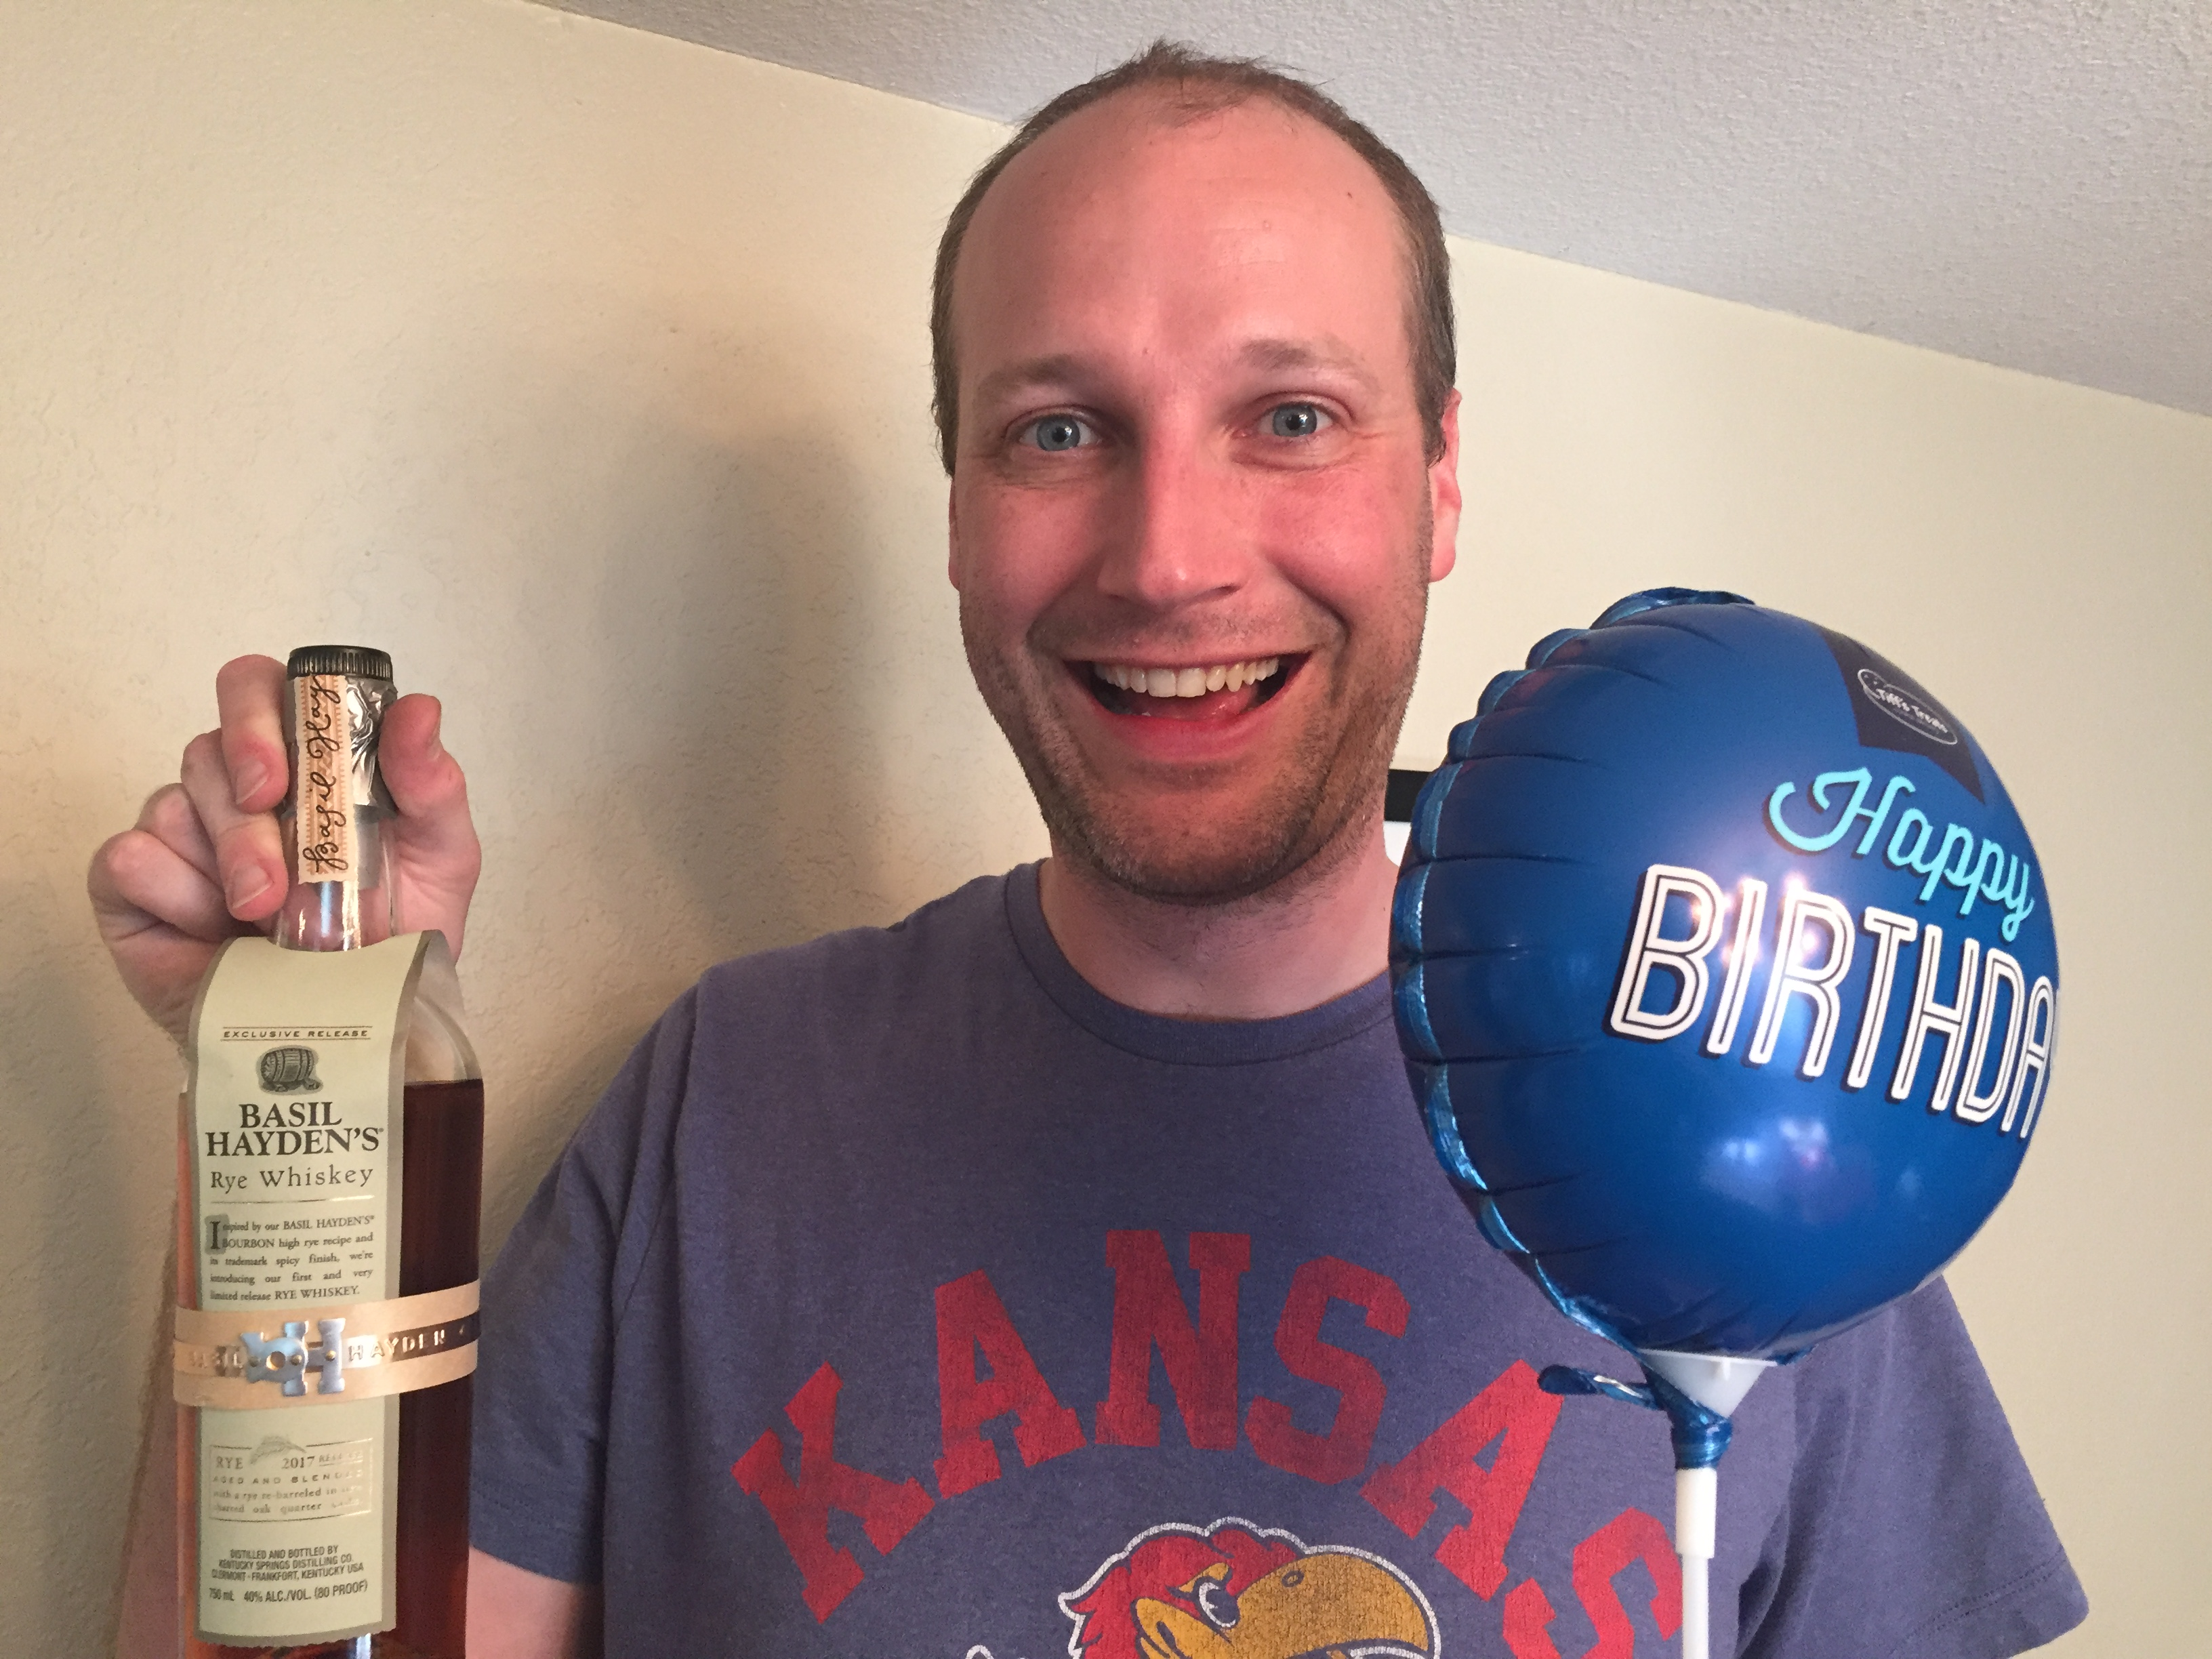 A Very Happy Birthday Boy Celebrates His 35th With Gifts Delivered All Day Via On